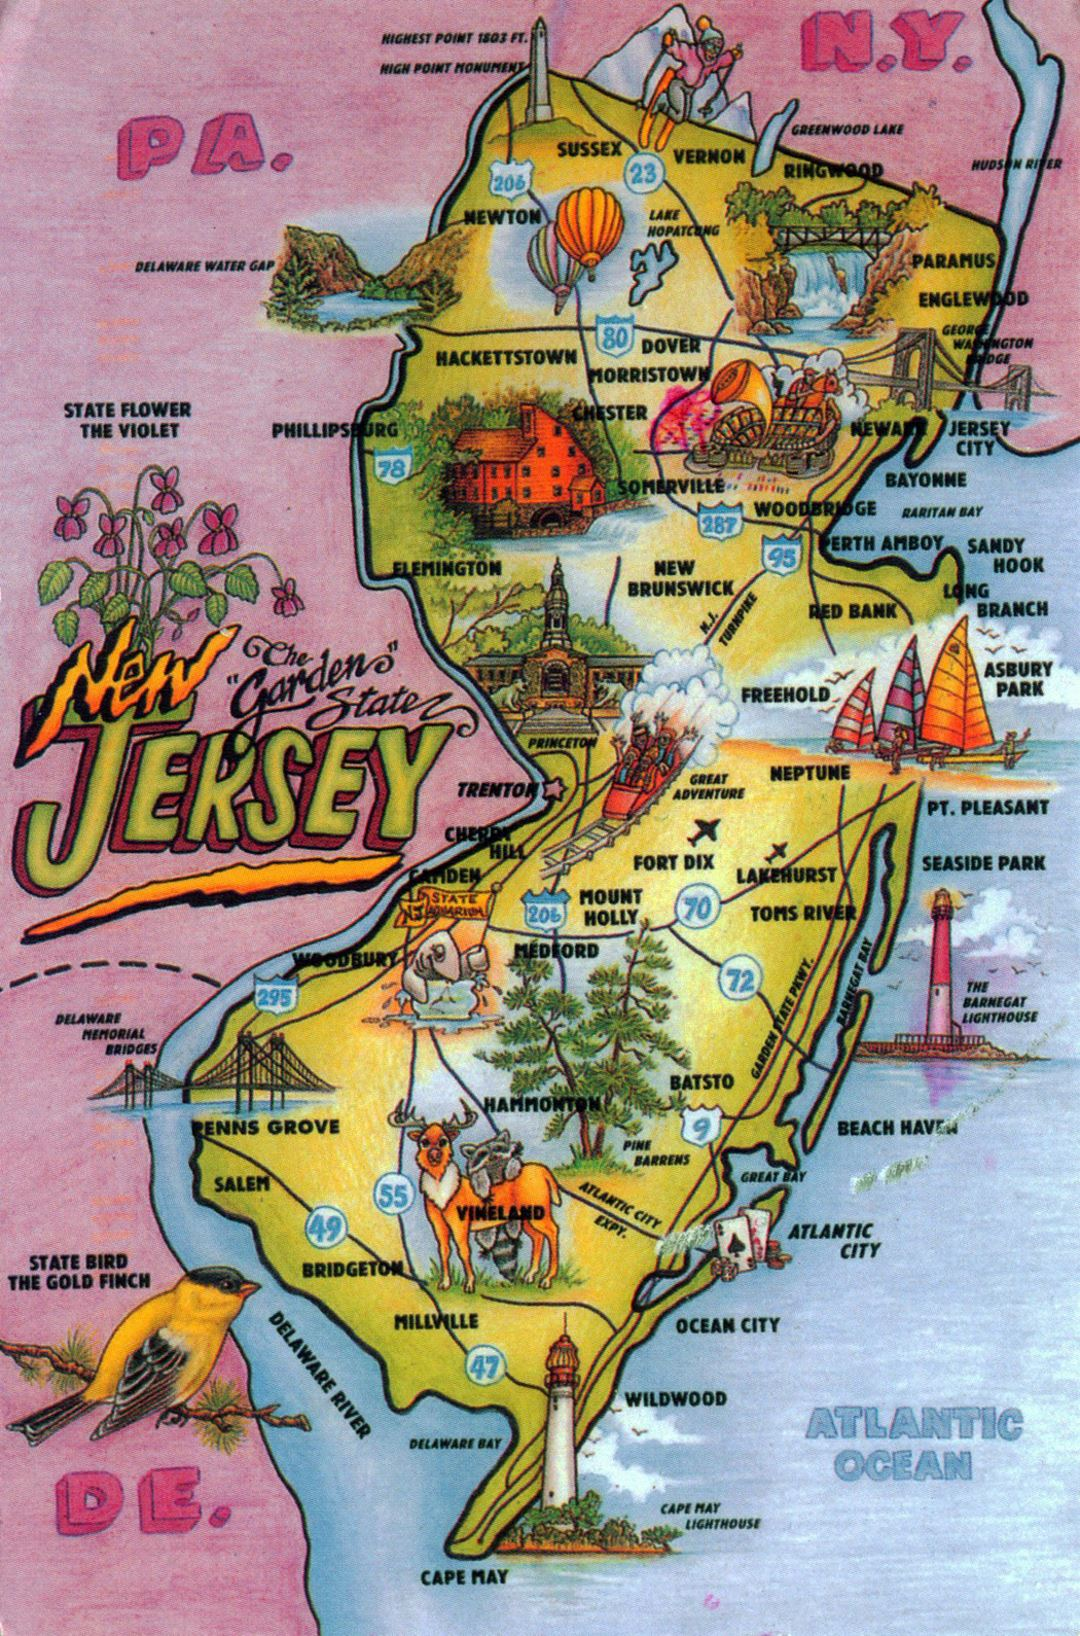 Detailed tourist illustrated map of New Jersey state